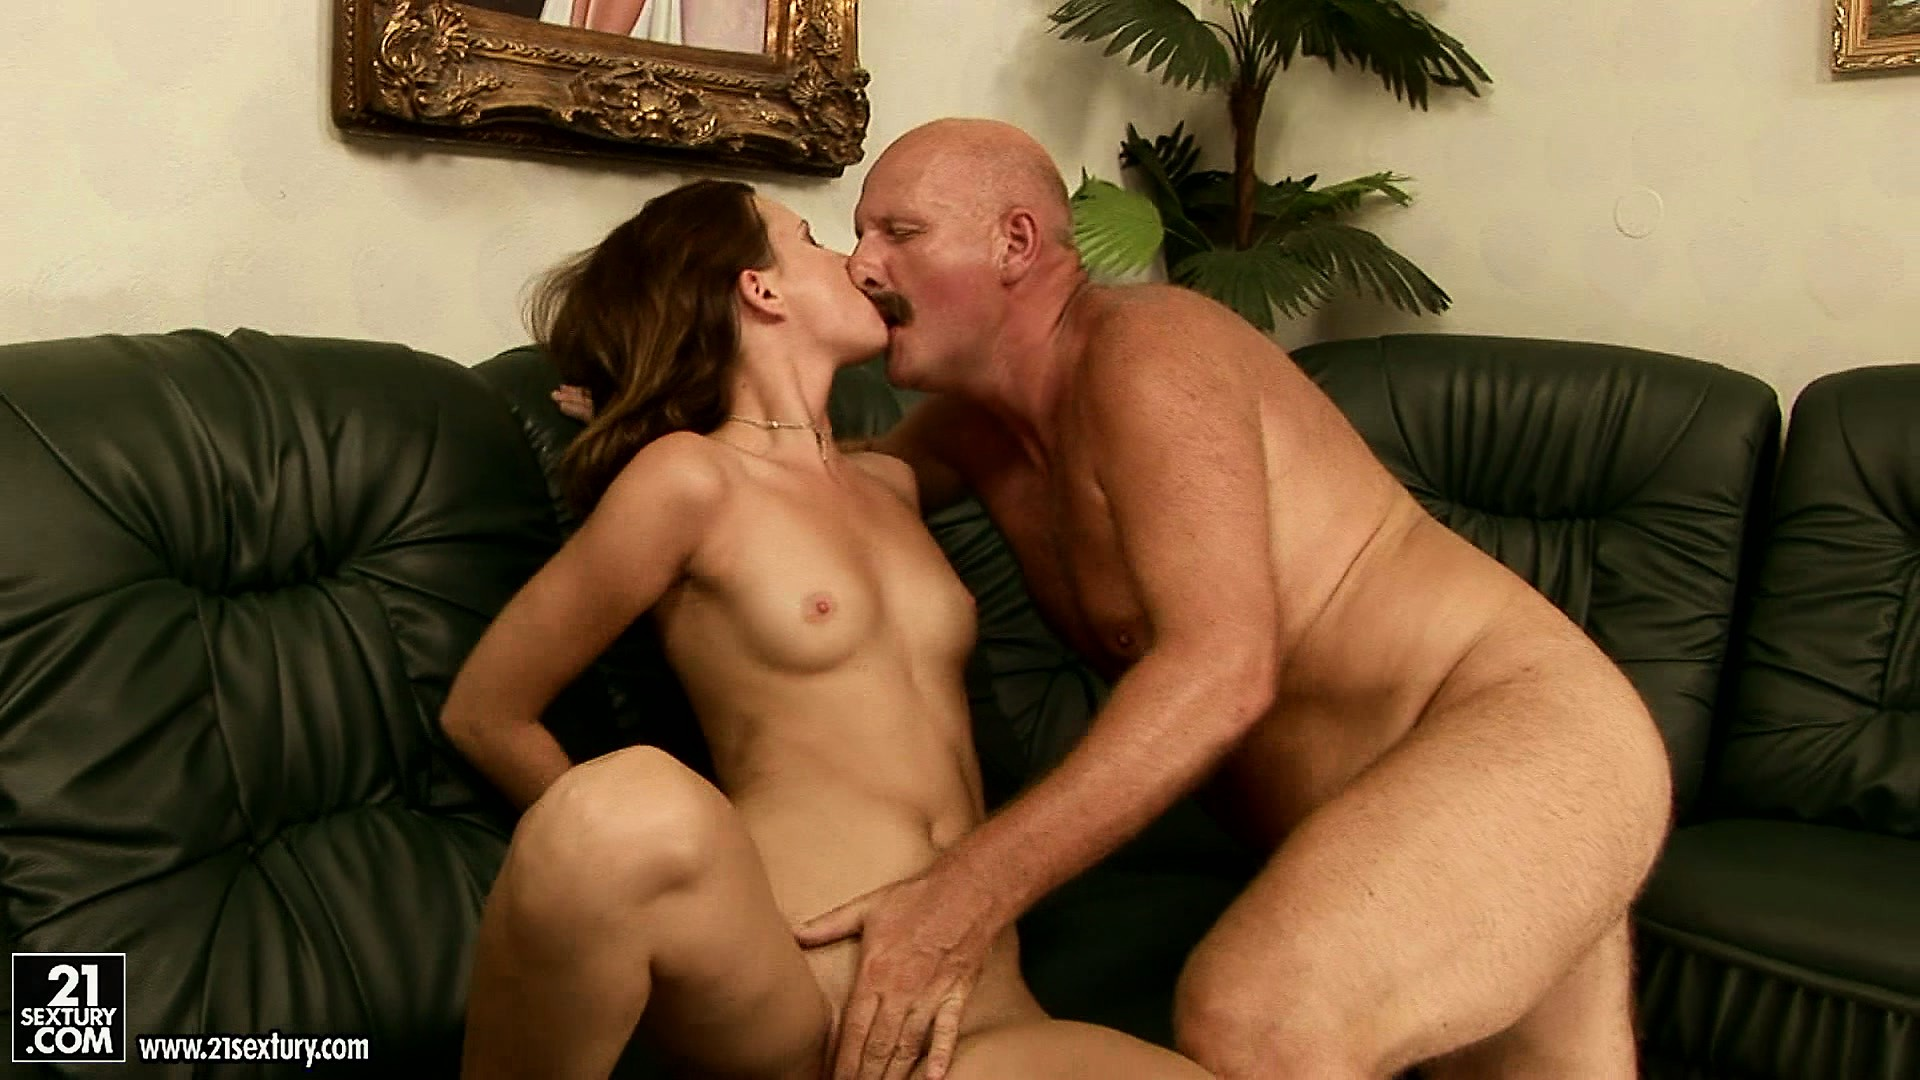 Porn Tube of Kinky Old Man Sixty-nines An Adorable Chick And Even Lets Her Rim His Ass